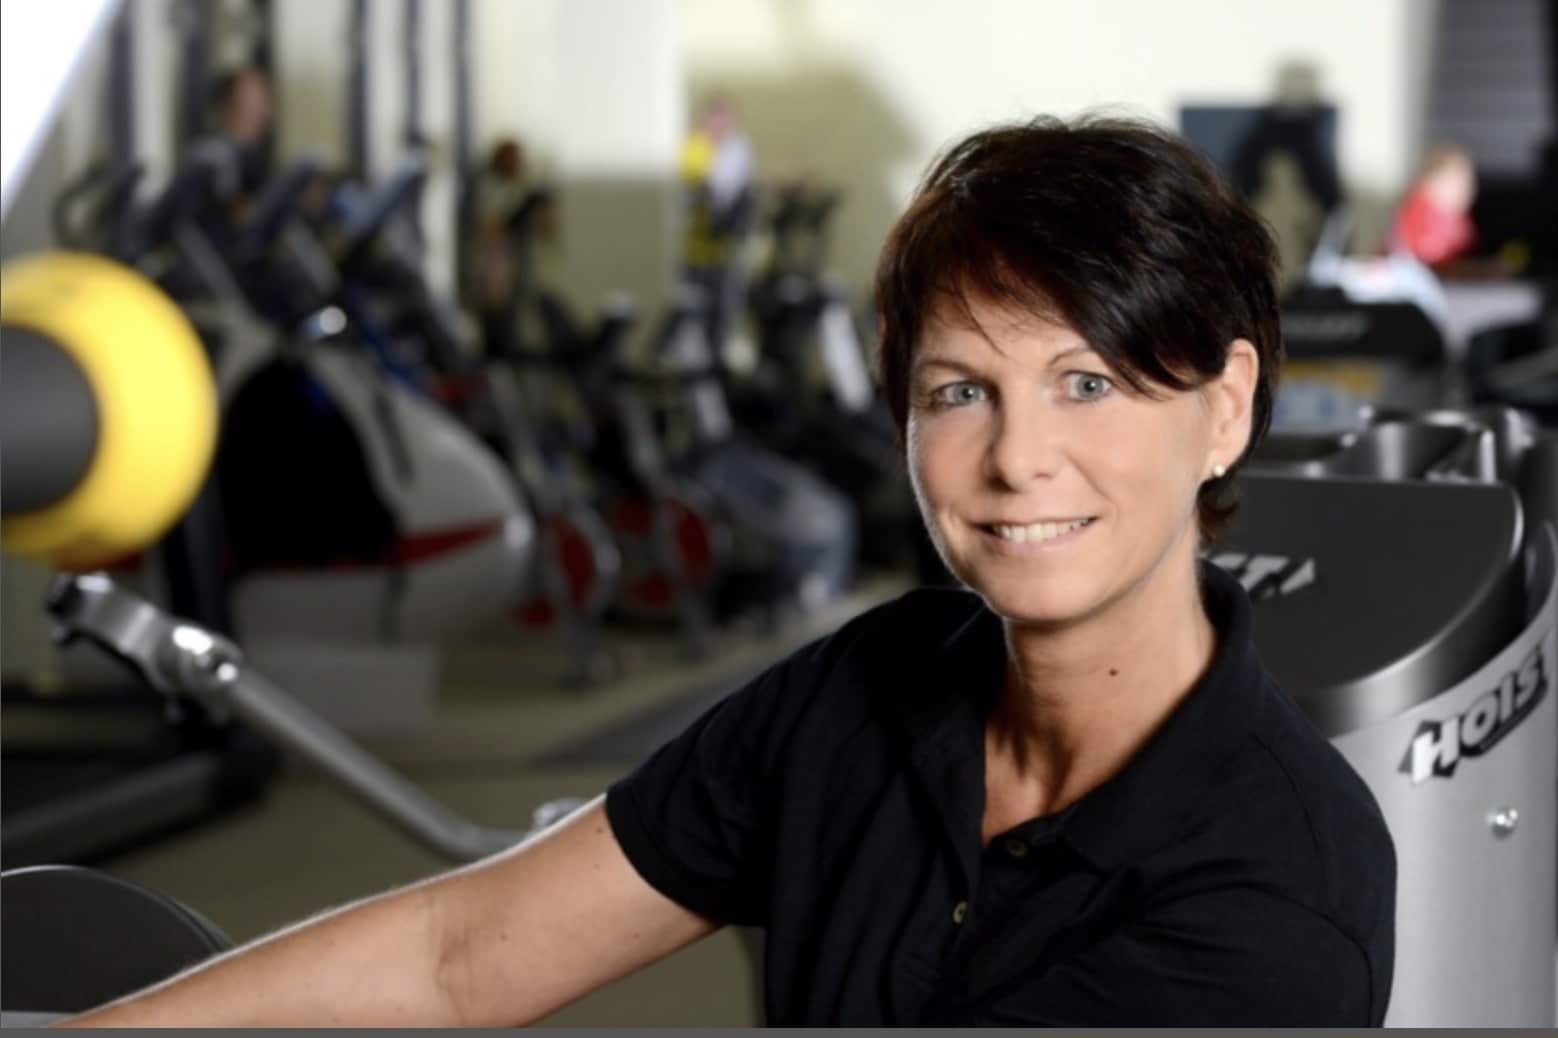 Kerstin Richter - Medical Fitness Coach